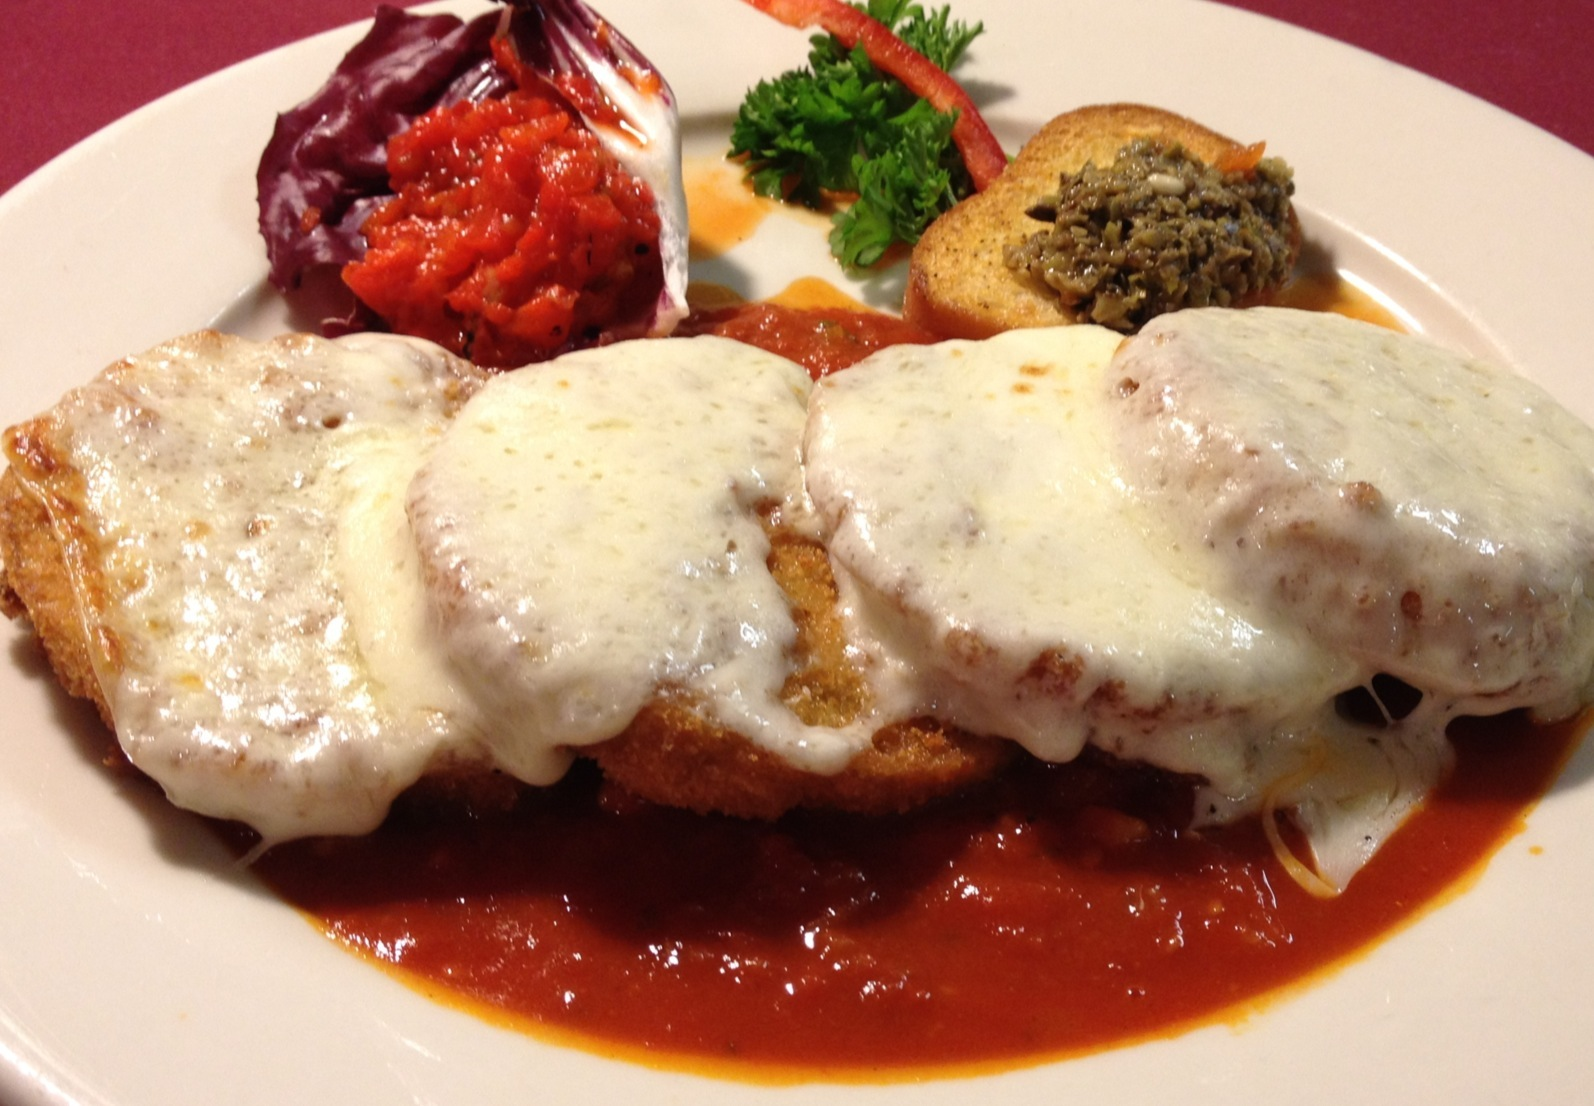 Breaded and Fried Eggplant Rounds with Mozzarella Cheese and Marinara Sauce